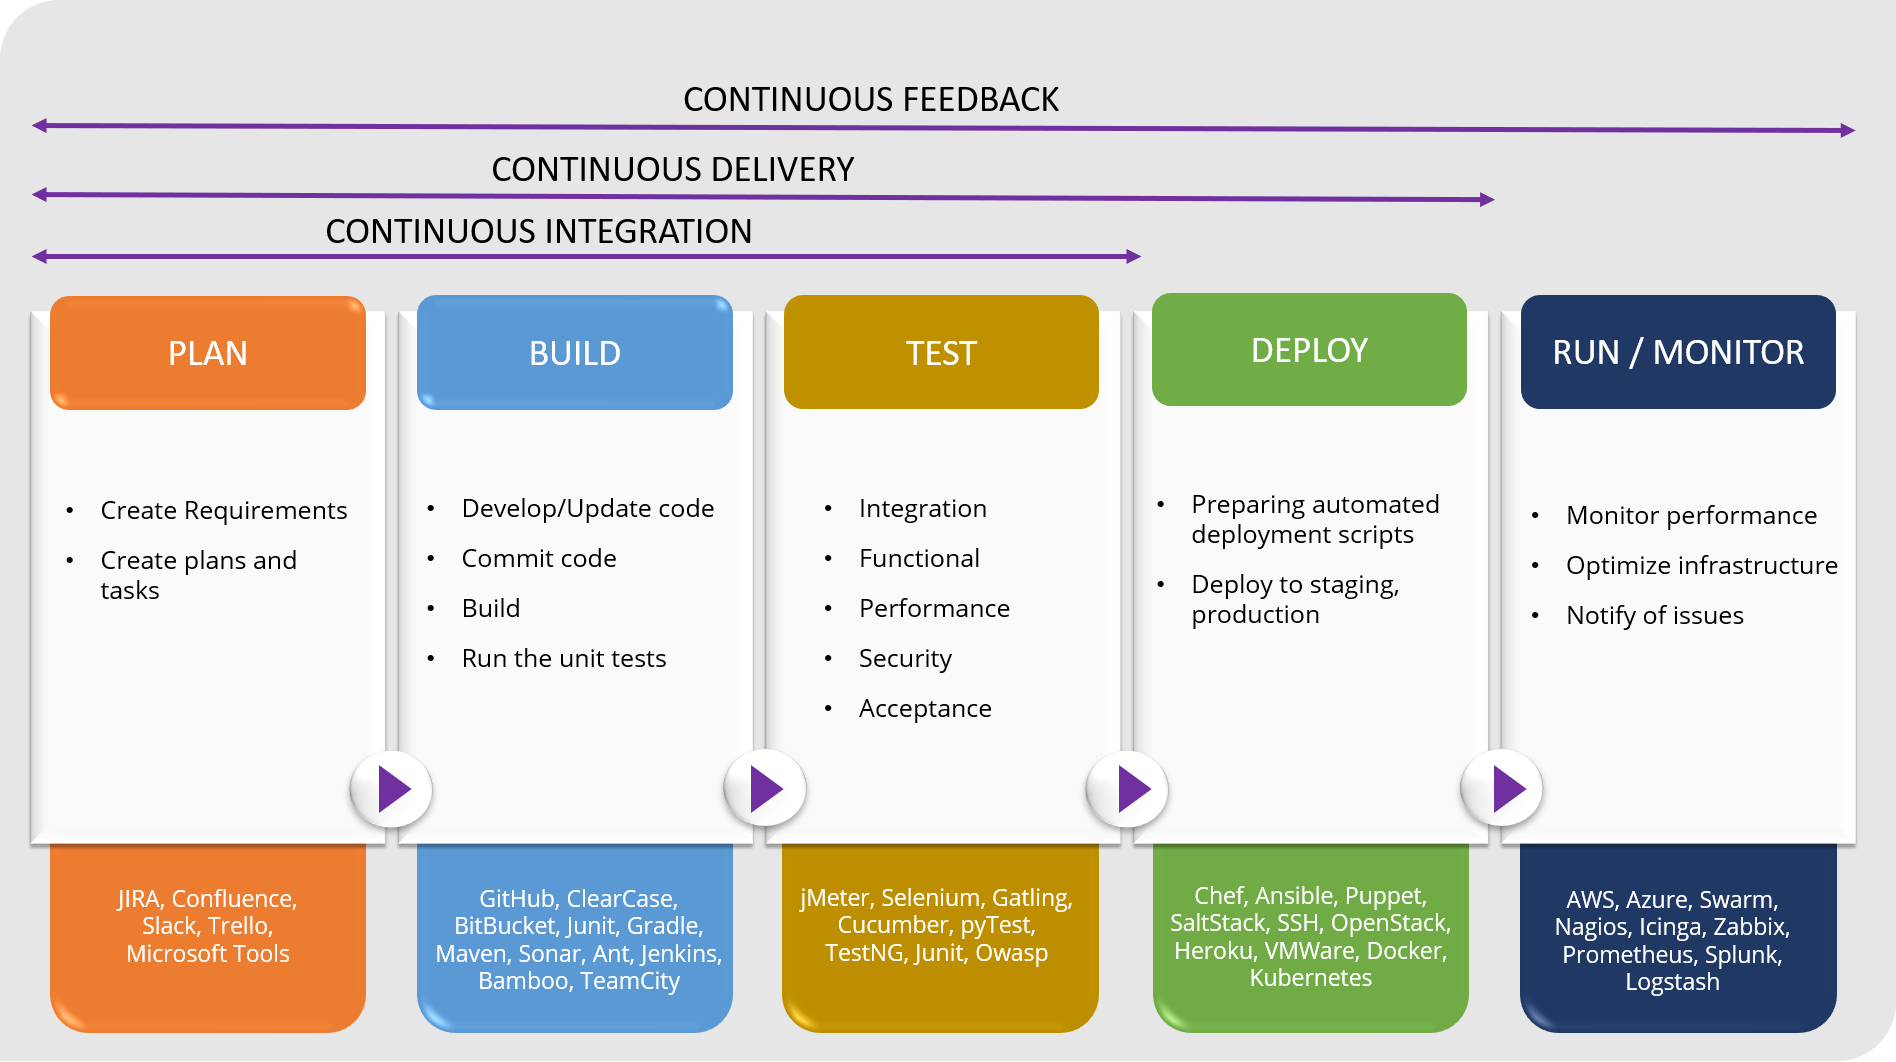 HSC DevOps Practice and DevOps Offerings | DevOps experts